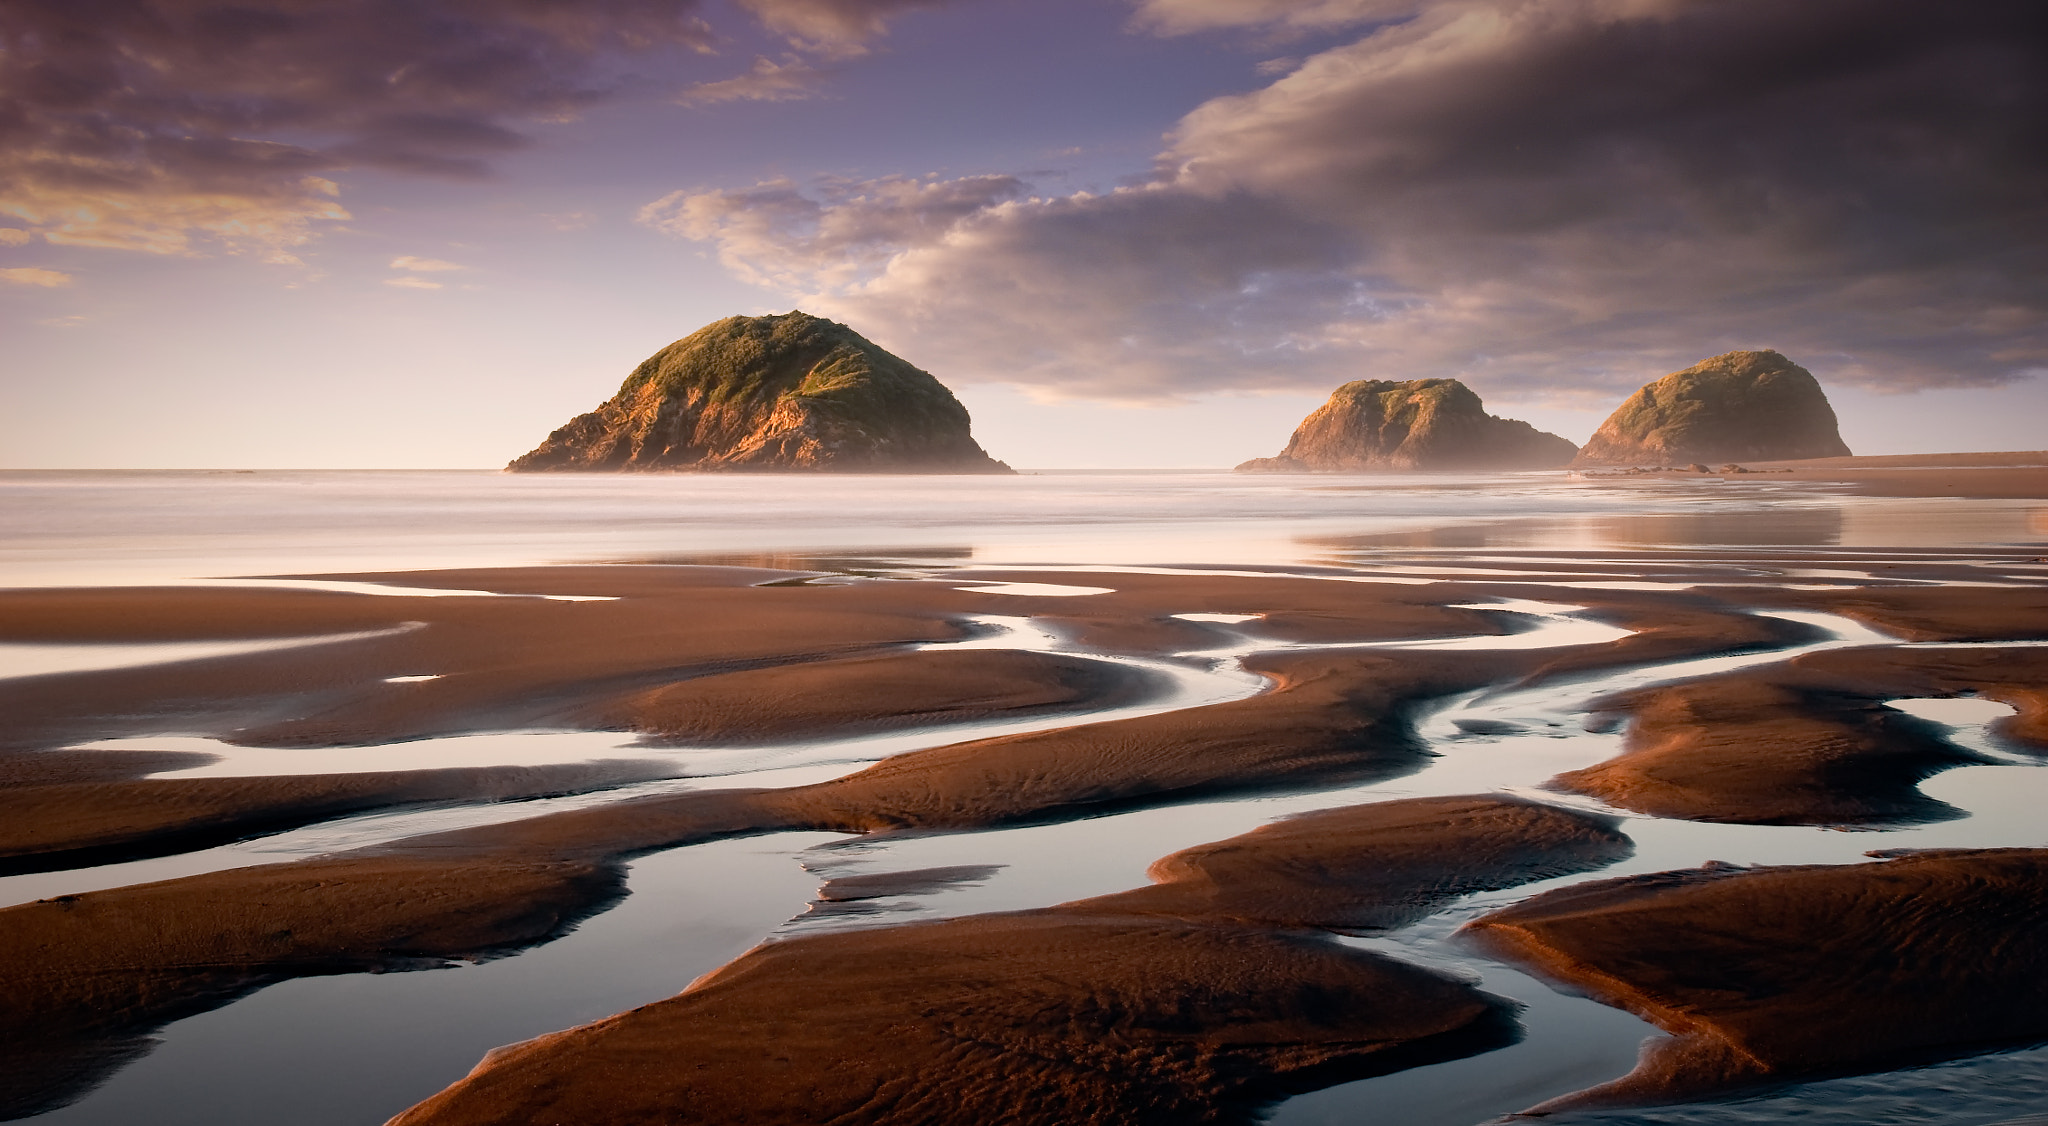 Photograph Sugar Loaf Islands, New Plymouth, NZ by Dean Mullin on 500px